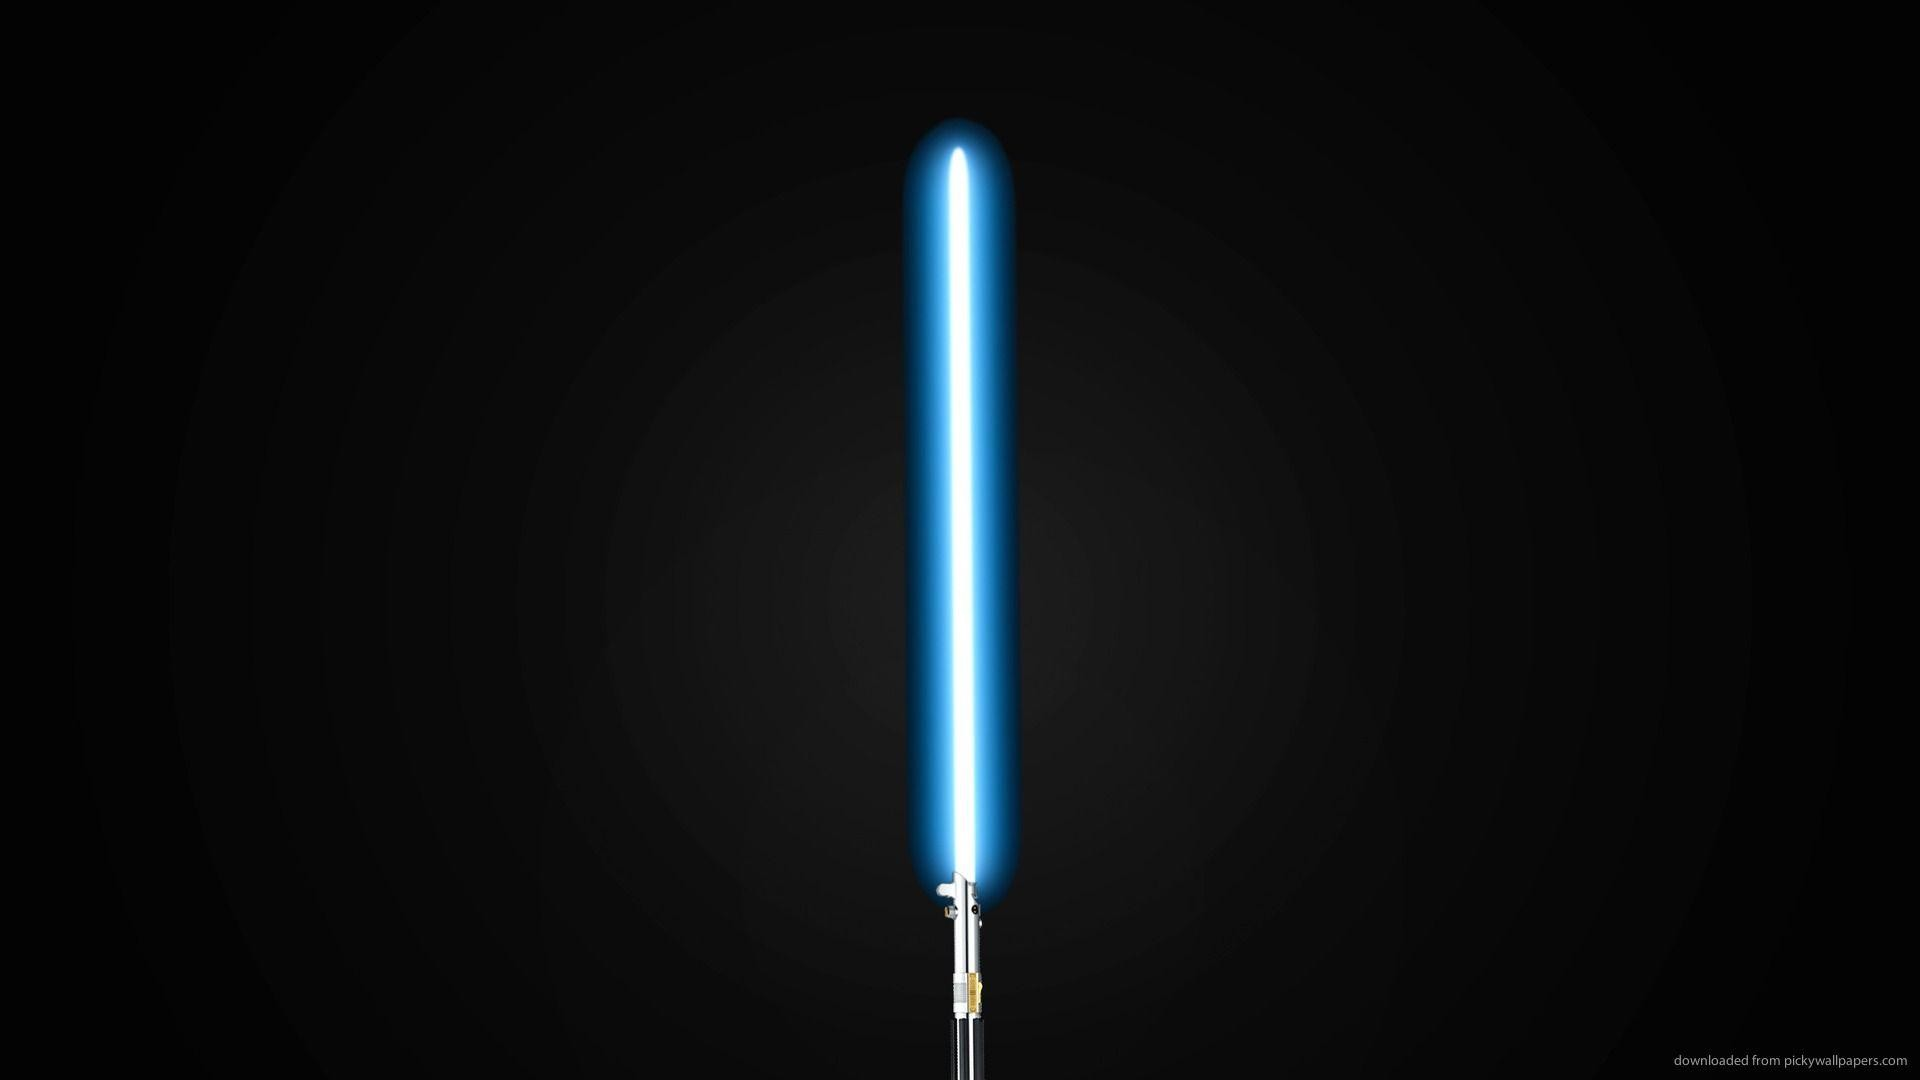 1920x1080 HD Blue Lightsaber Wallpaper